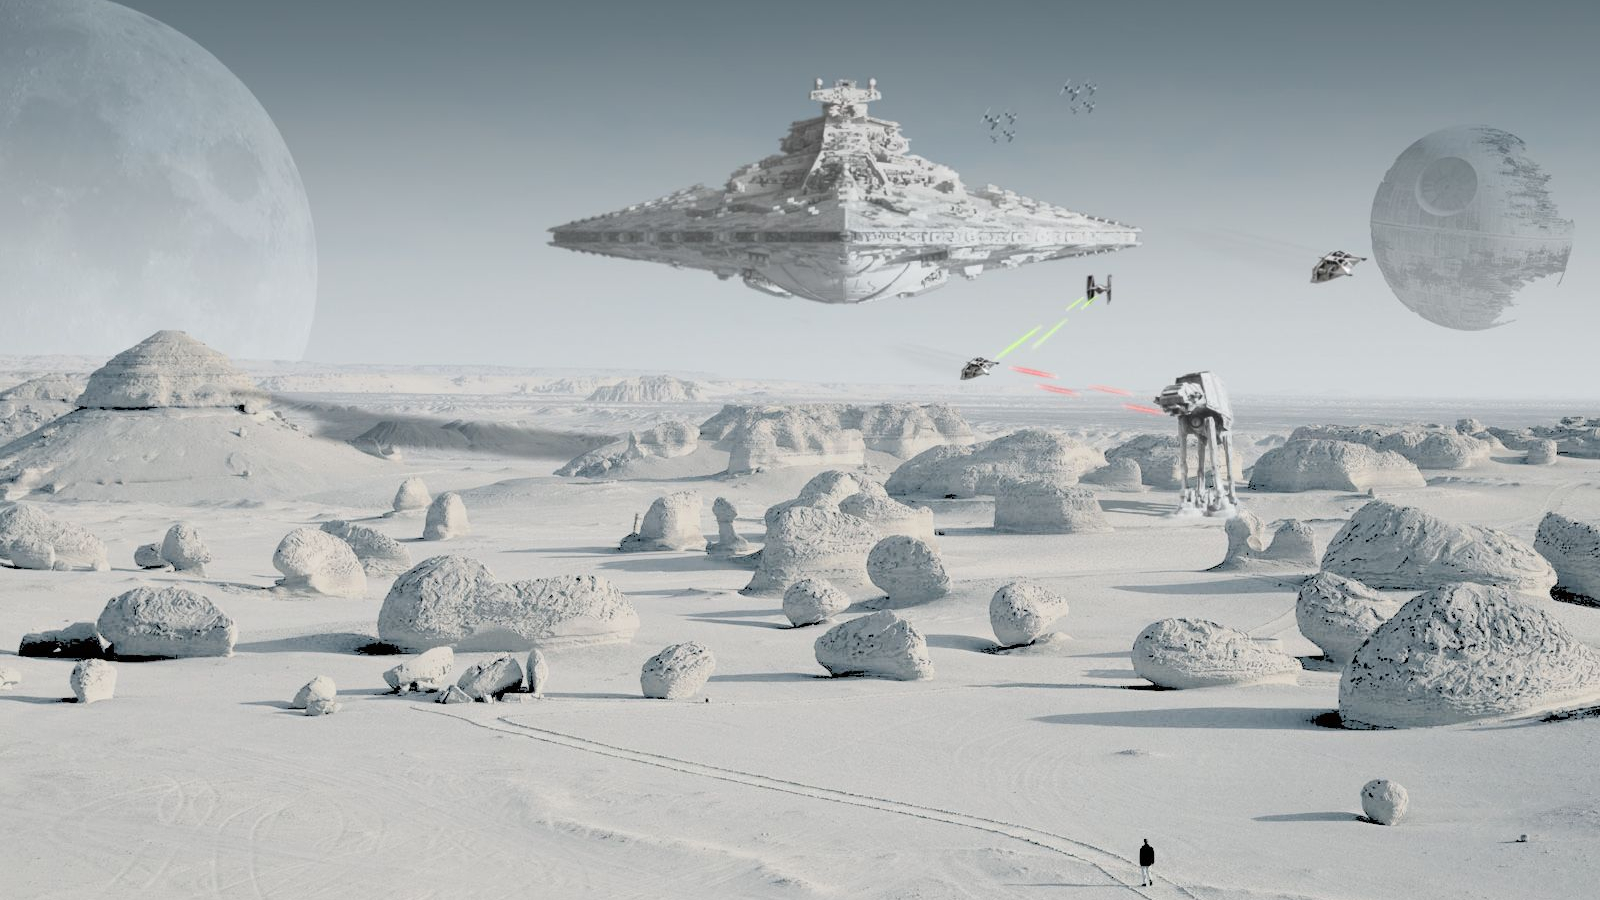 Free Download Hoth Planet Snowy Backdrop Star Wars Options January In 2019 1600x1106 For Your Desktop Mobile Tablet Explore 37 Star Wars Snow Background Star Wars Snow Background Star